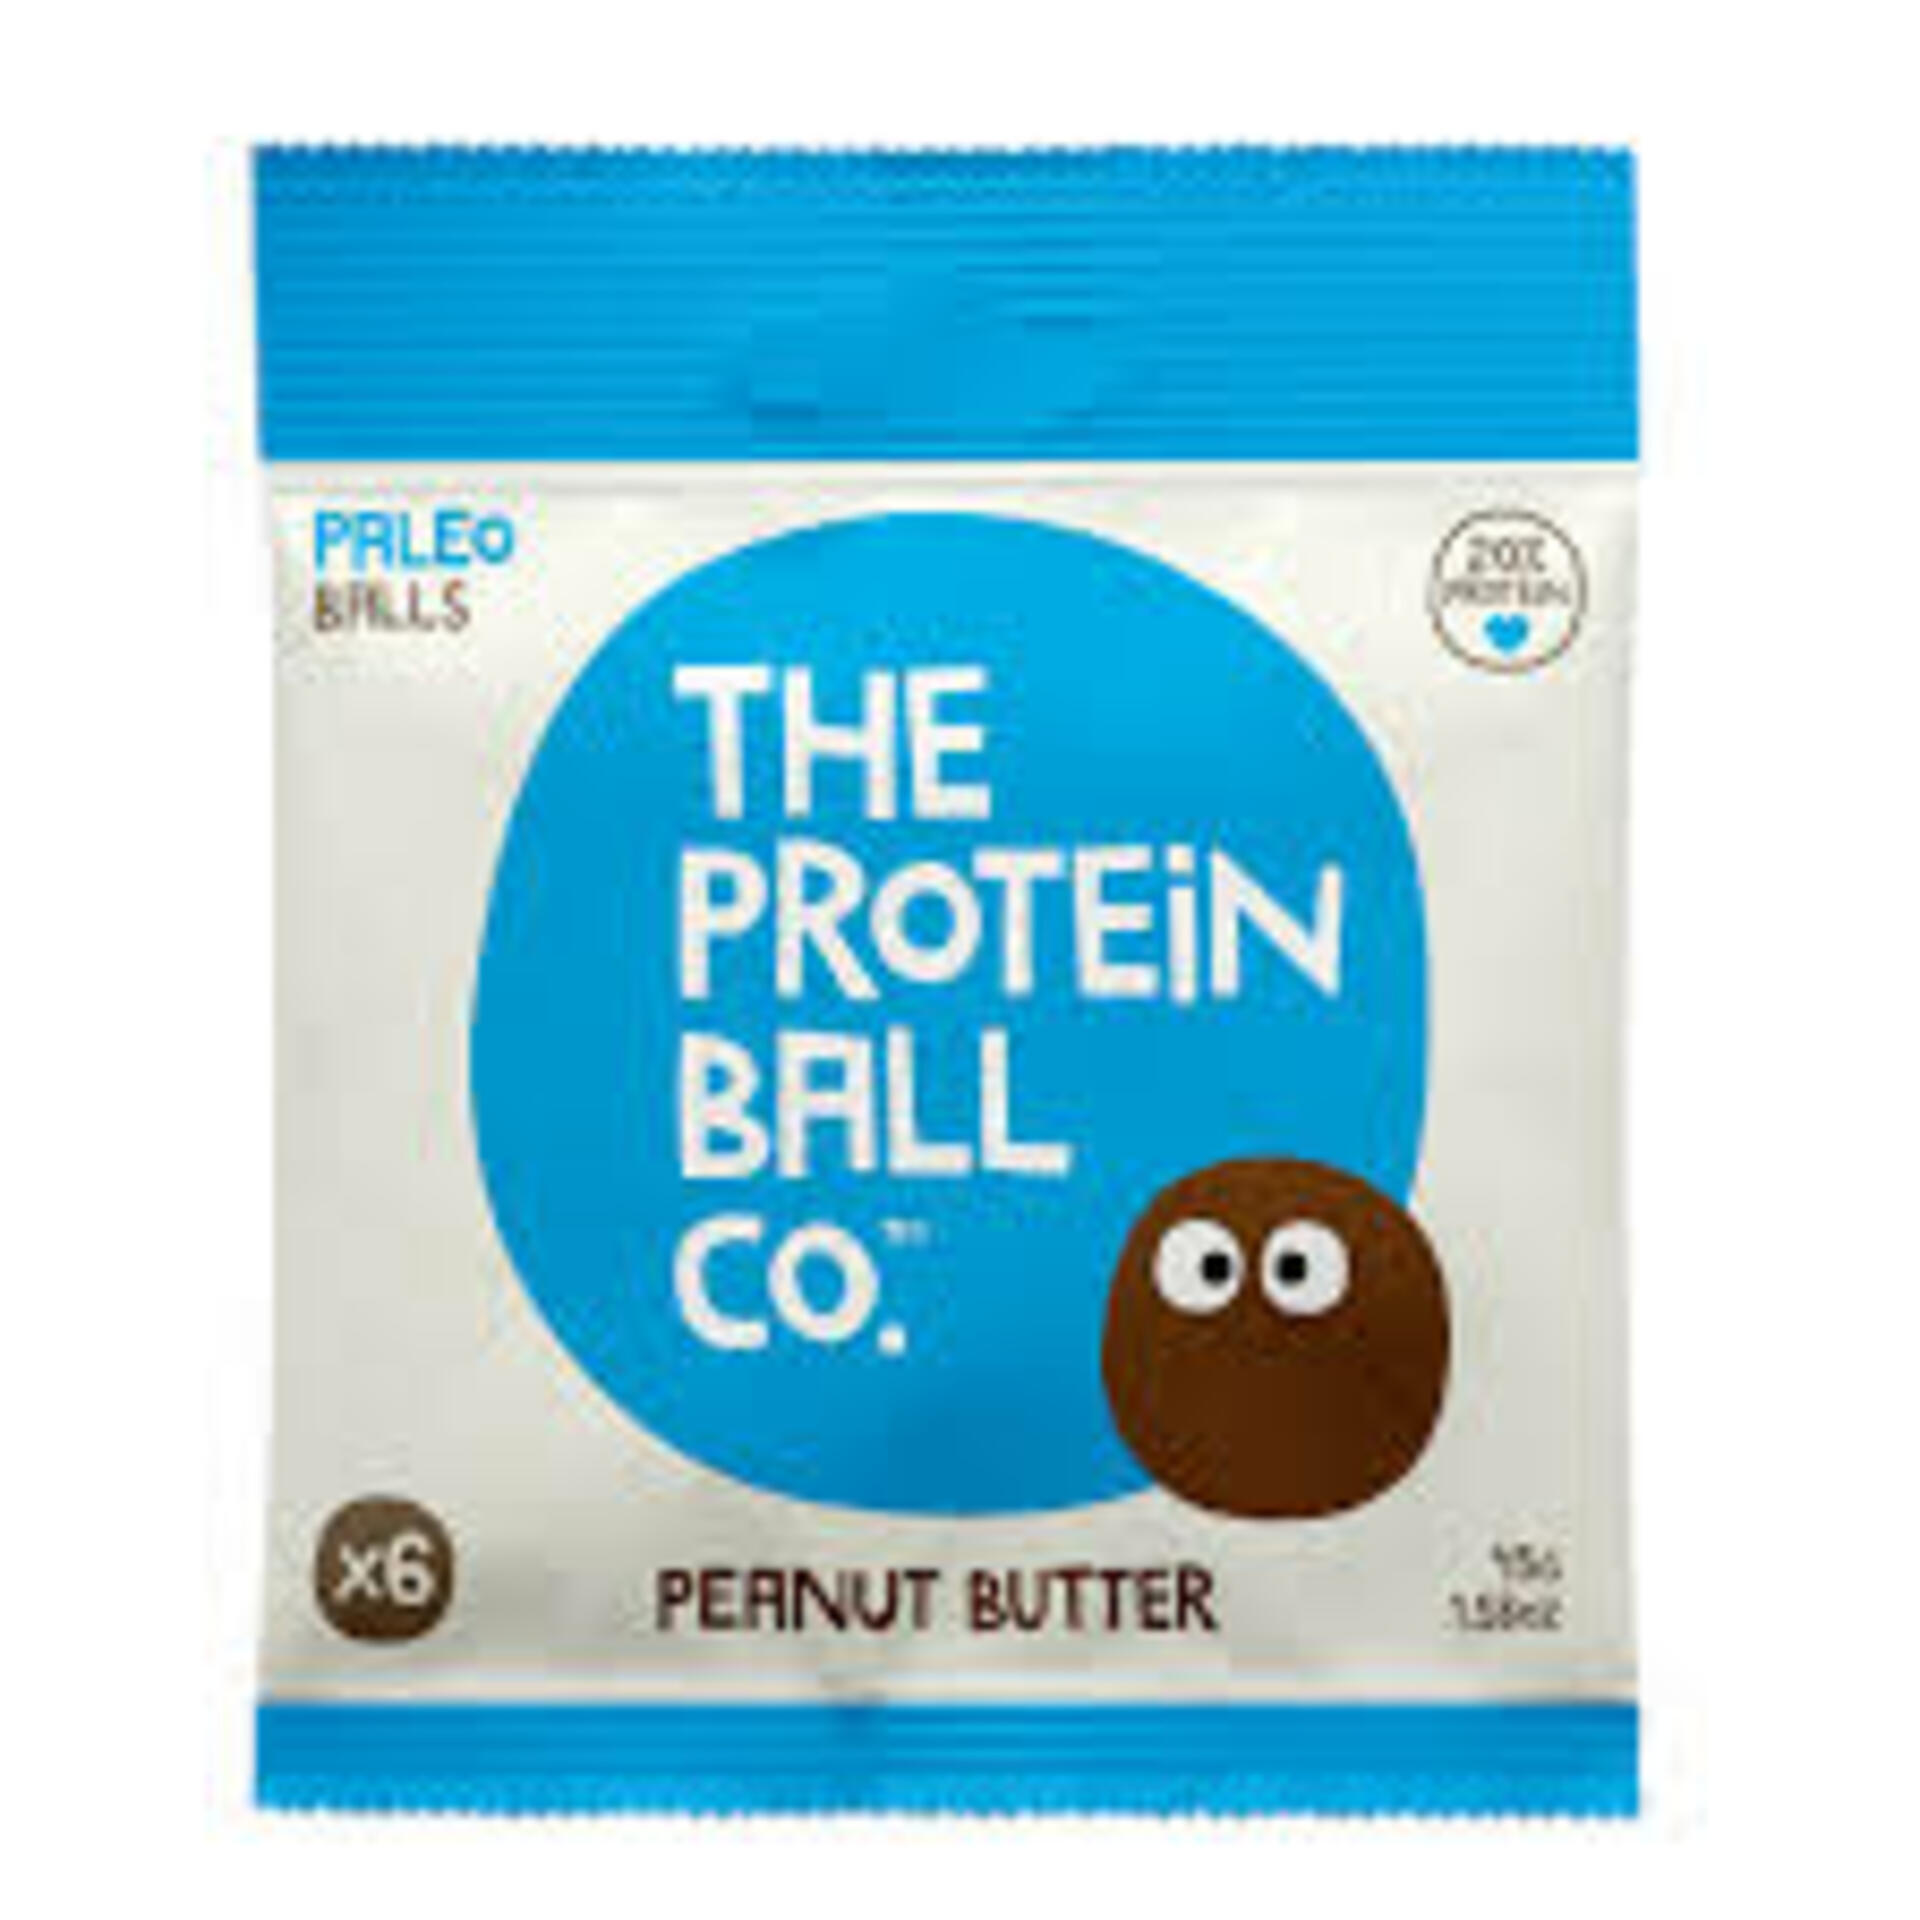 Protein The protein ball co peanut butter 45 g